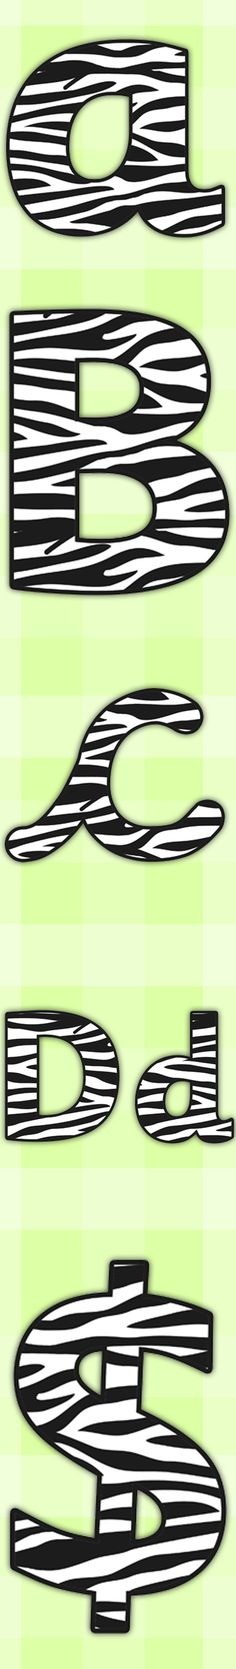 Twinkl Resources >> Zebra Pattern Display Lettering >> Printable resources for Primary, EYFS, KS1 and SEN. Thousands of classroom displays and teaching aids! Topics, Safari, Animal, Patterns, Display, Lettering